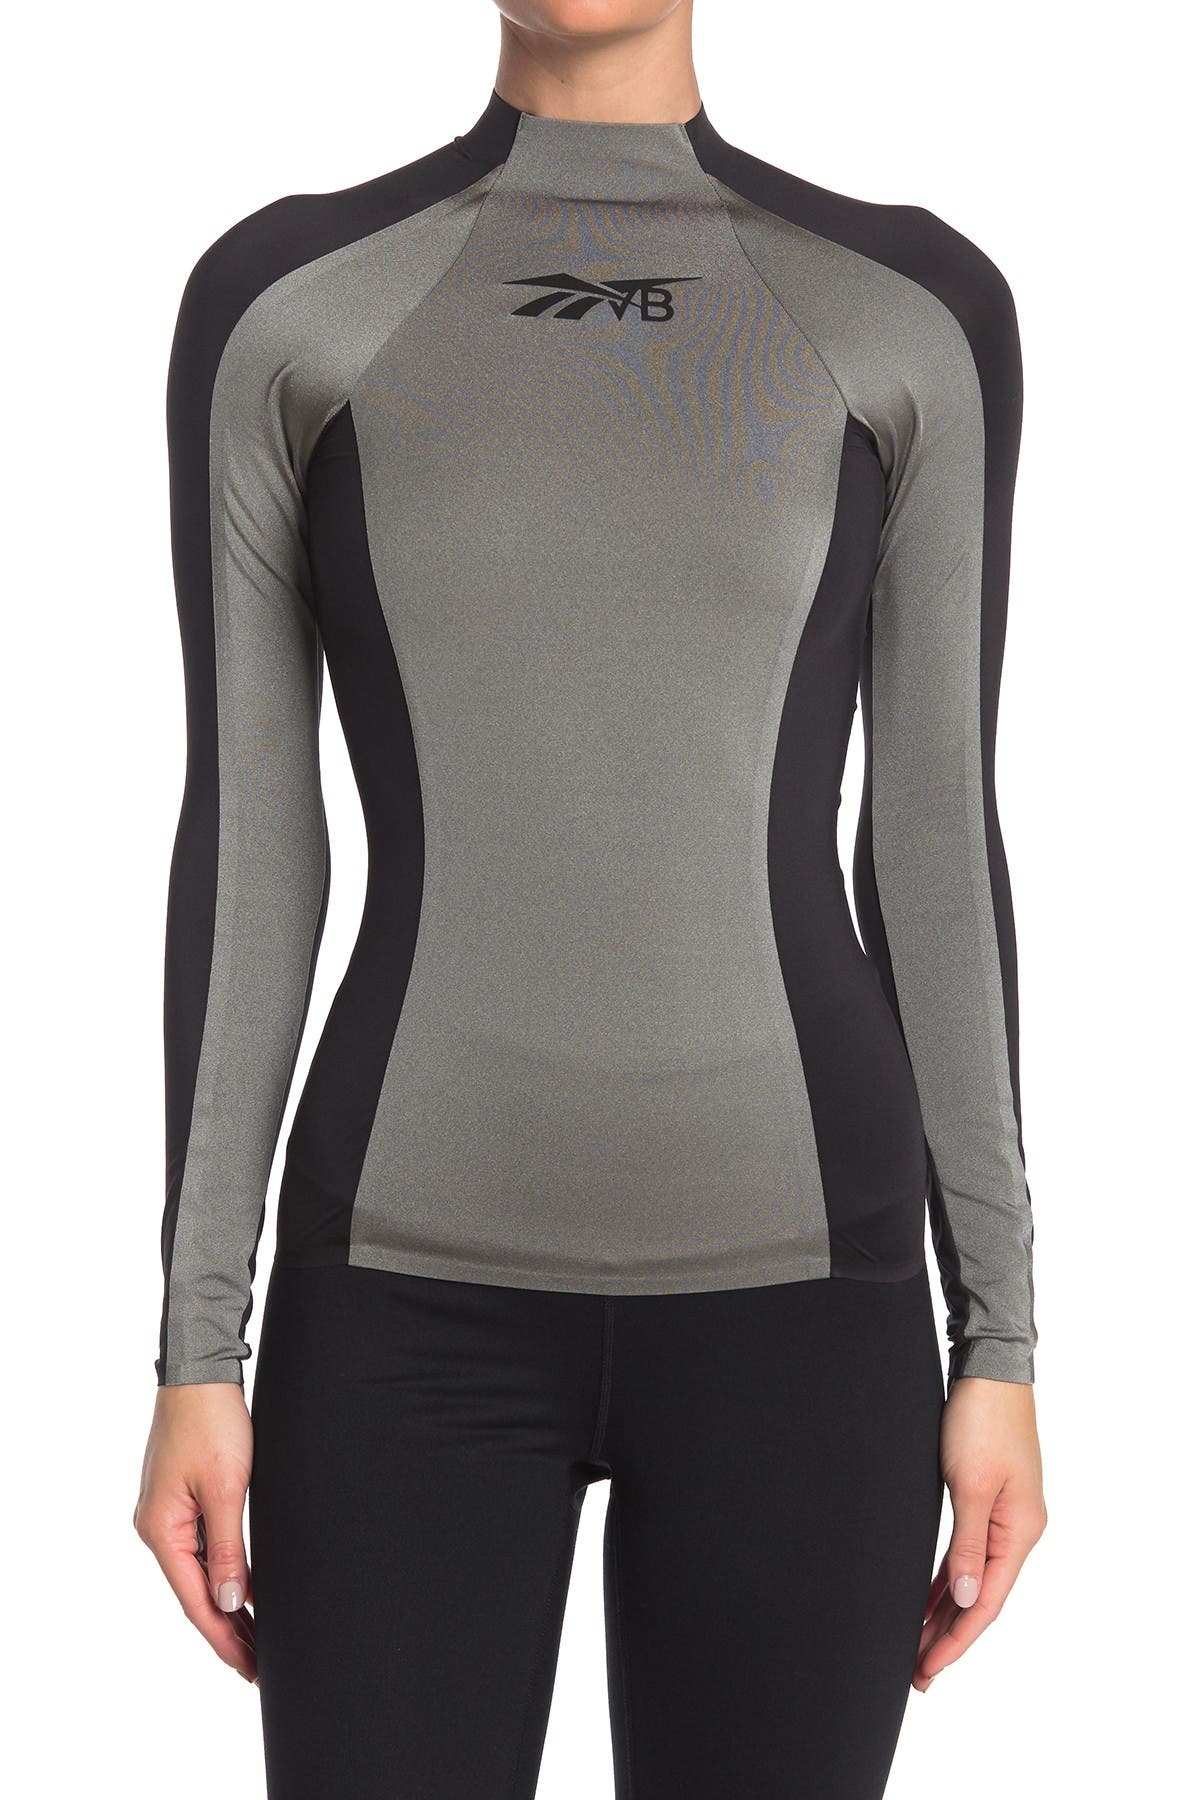 Image of REEBOK BY VICTORIA BECKHAM High Neck Stretch Top